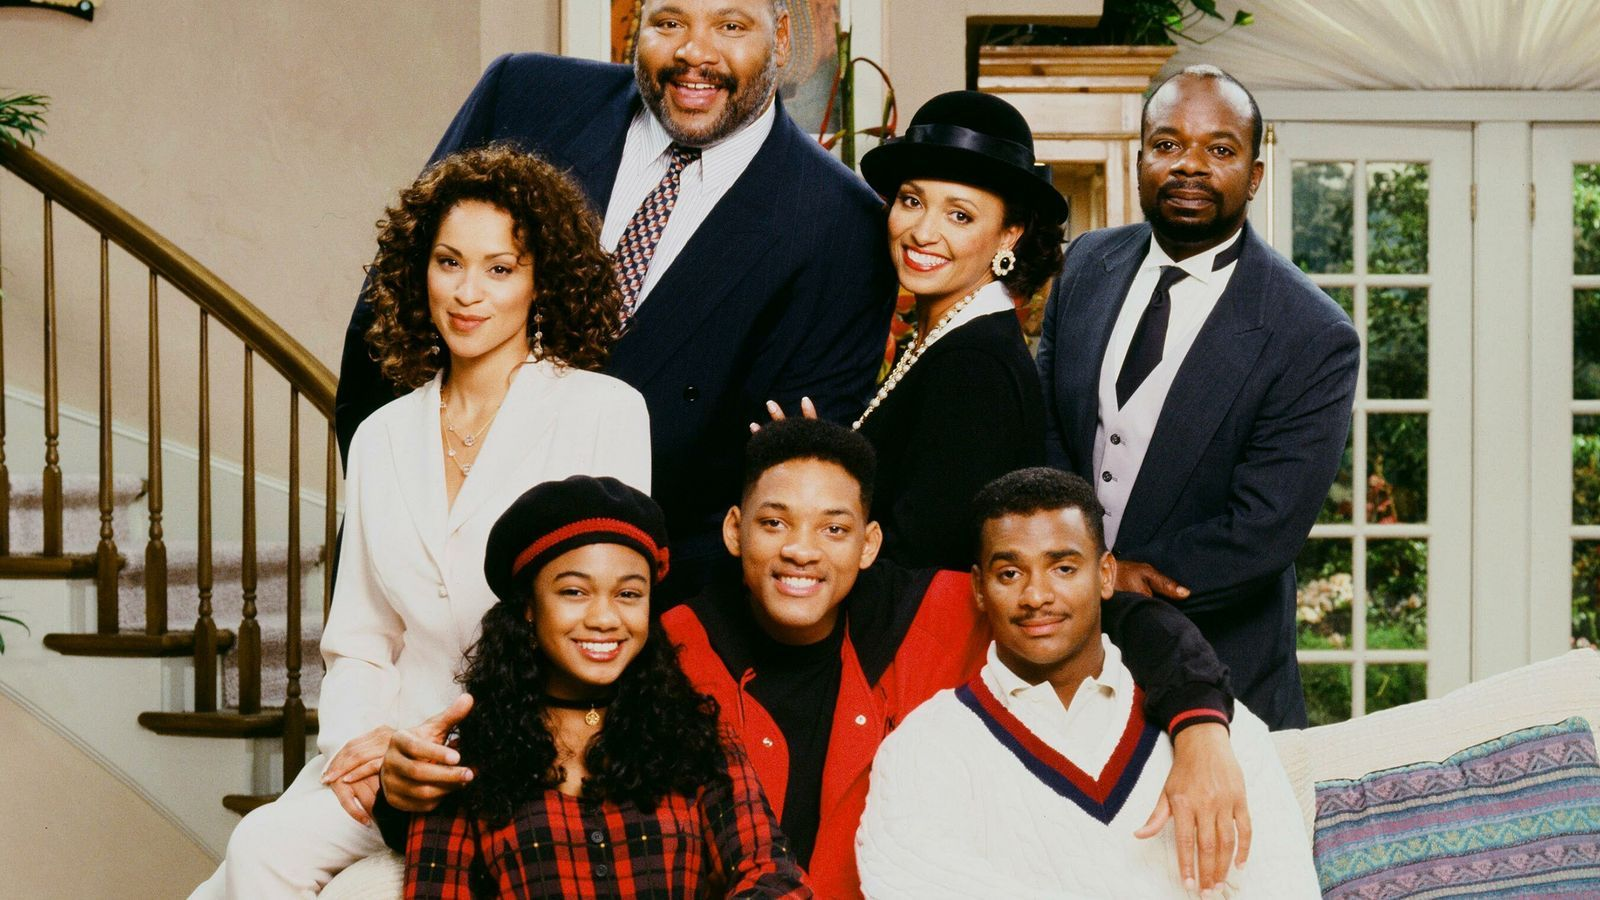 Will Smith prepara un 'spin-off' d''El príncipe de Bel Air'